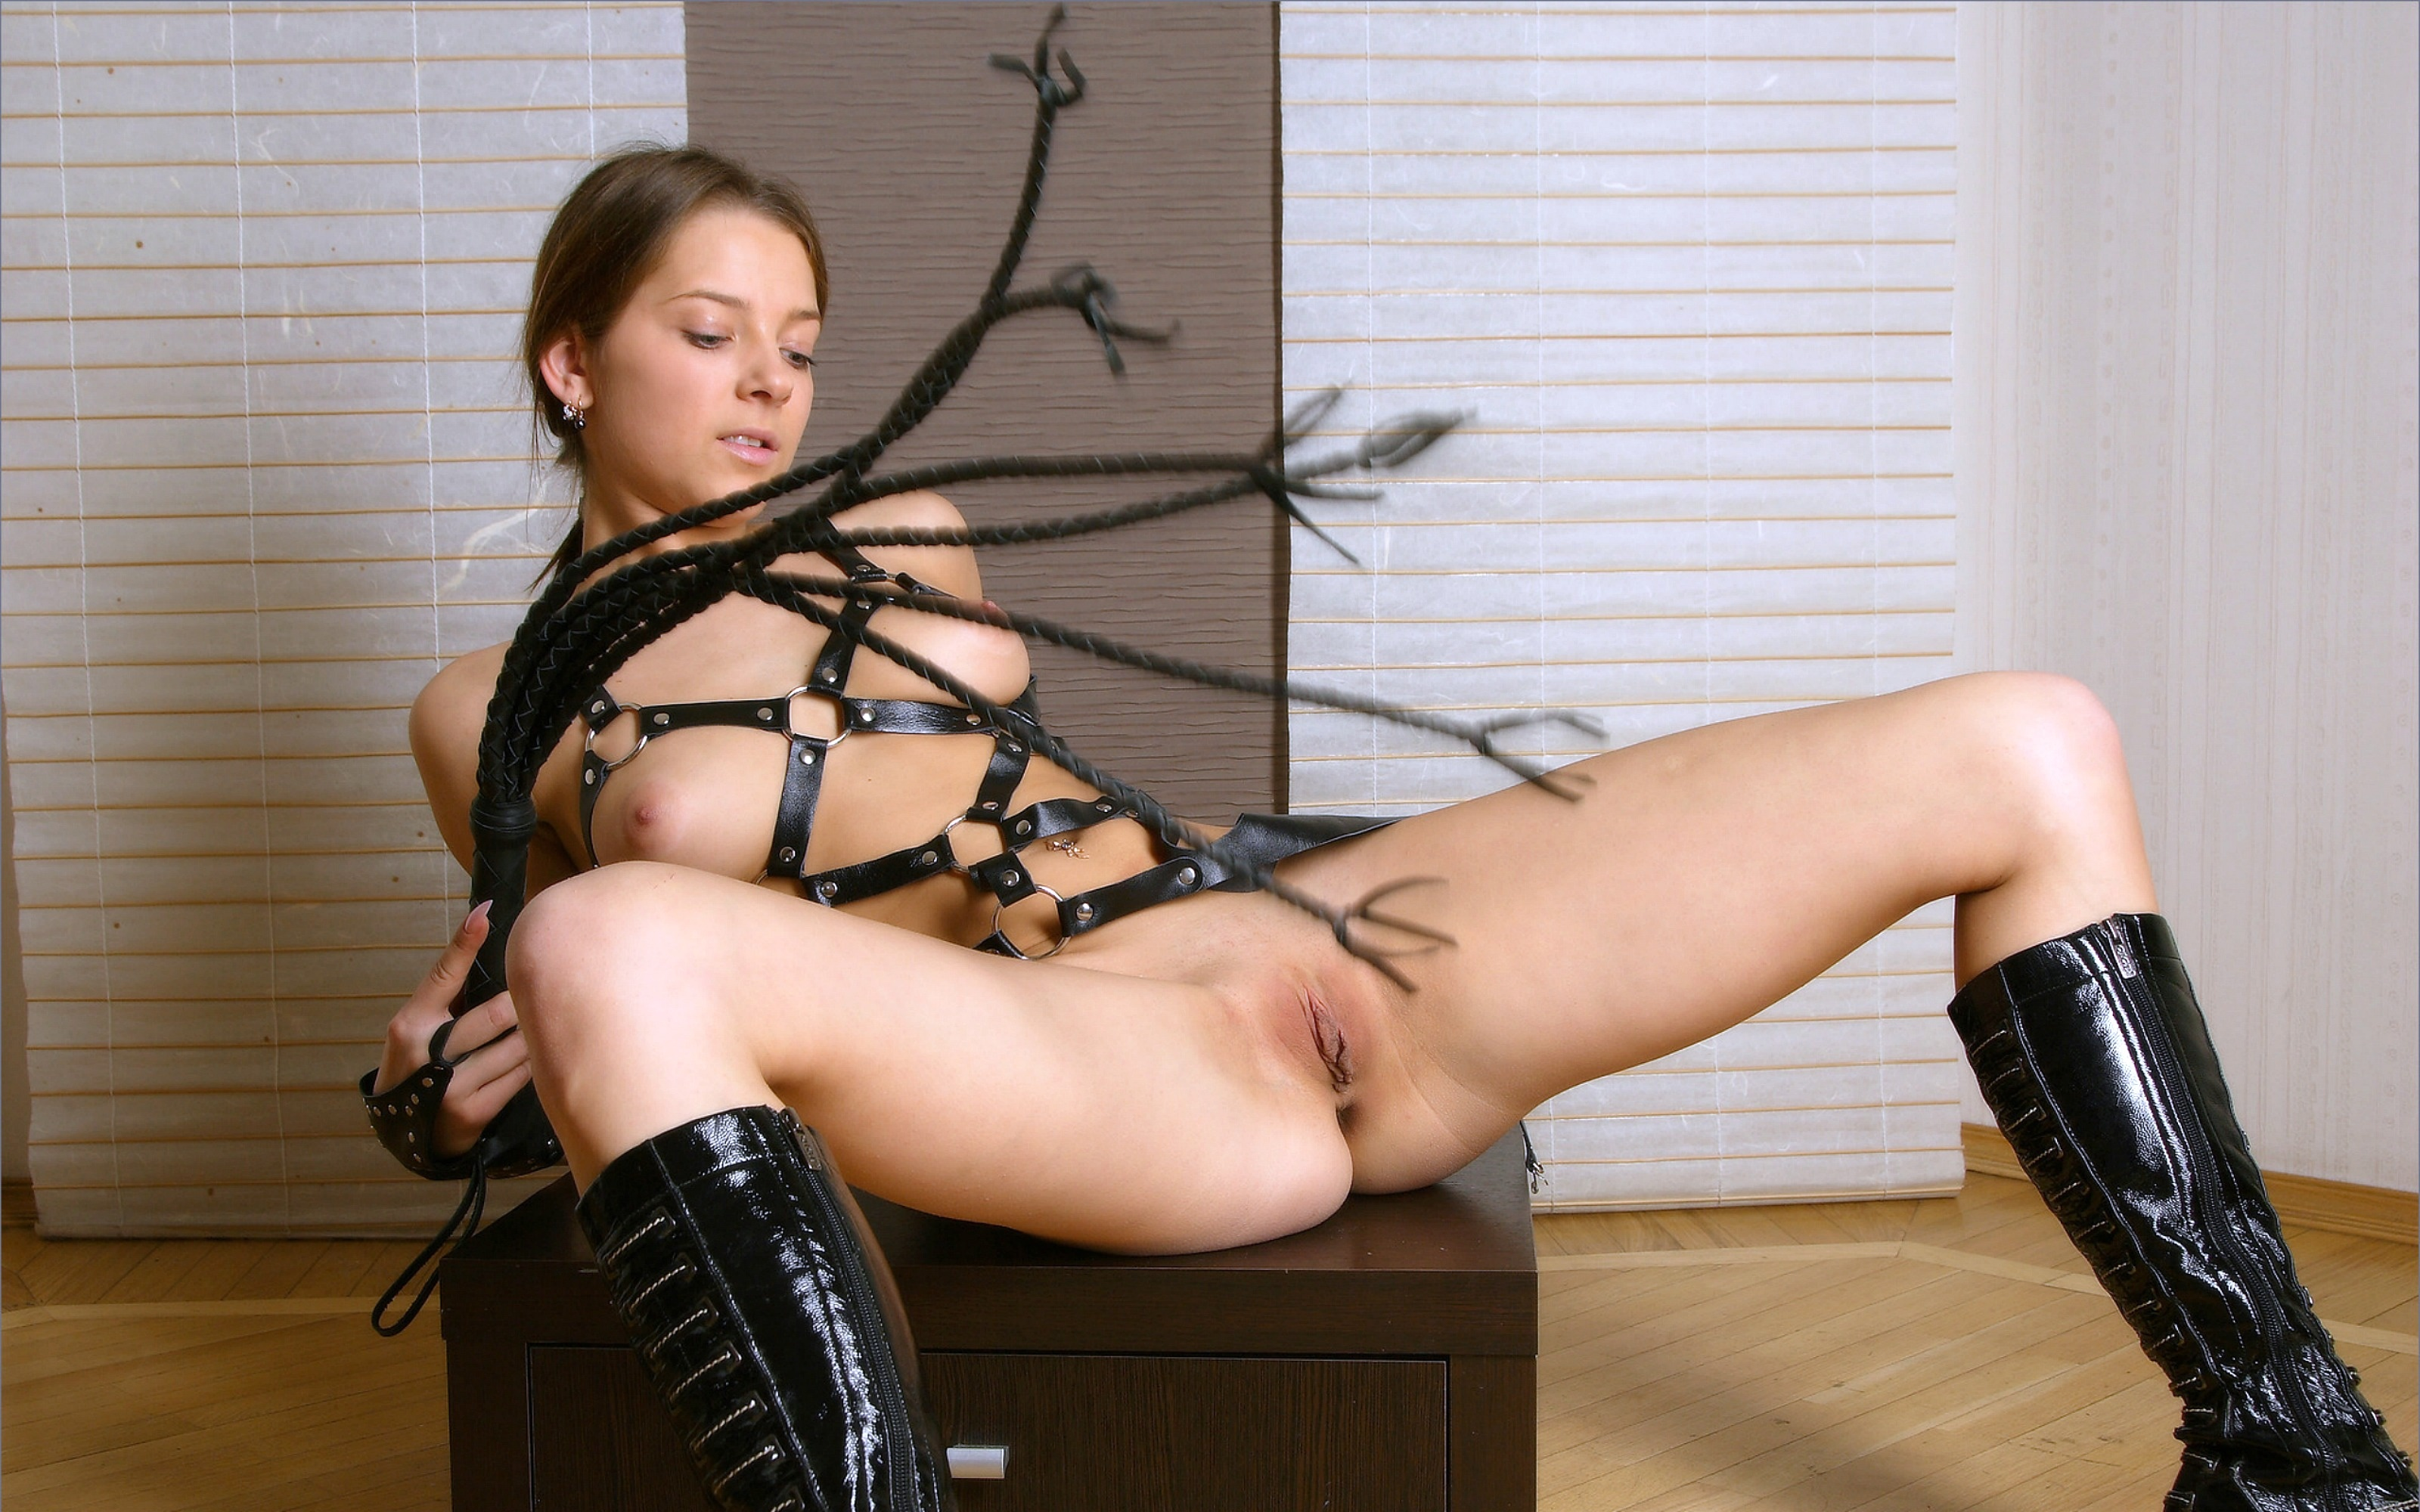 Wallpaper malisha, blonde, leather, whip, tits, nipples, shaved pussy,  spread legs, boots, anina, leather, harness, whip, teasing, shaved, cunt,  legs, ...